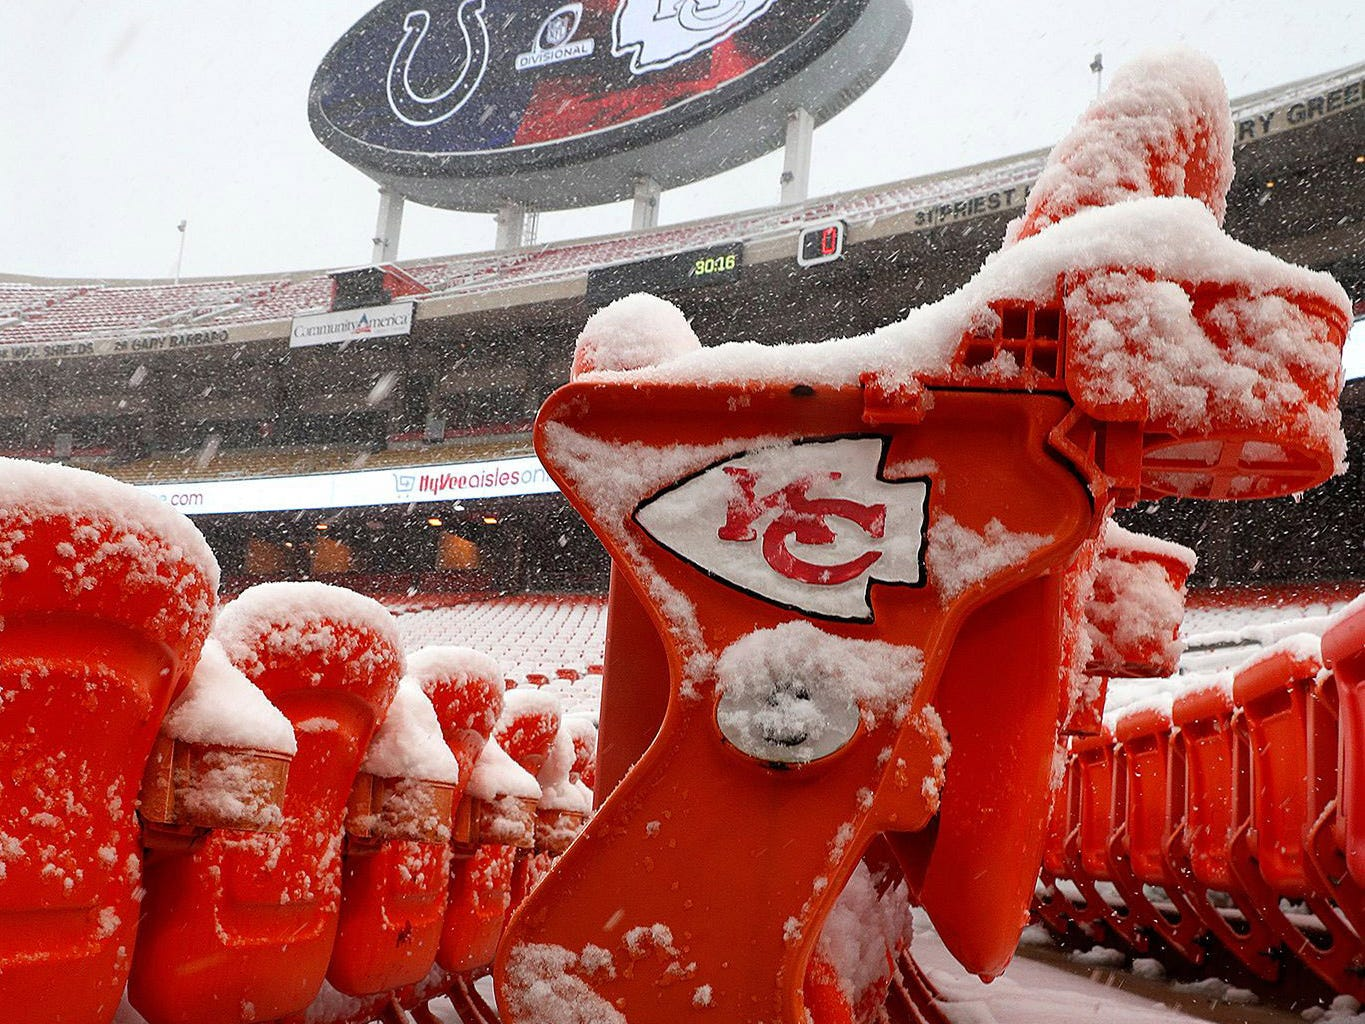 Snow on the seats at Arrowhead Stadium before the AFC Divisional playoff football game between the Indianapolis Colts and Kansas City Chiefs.